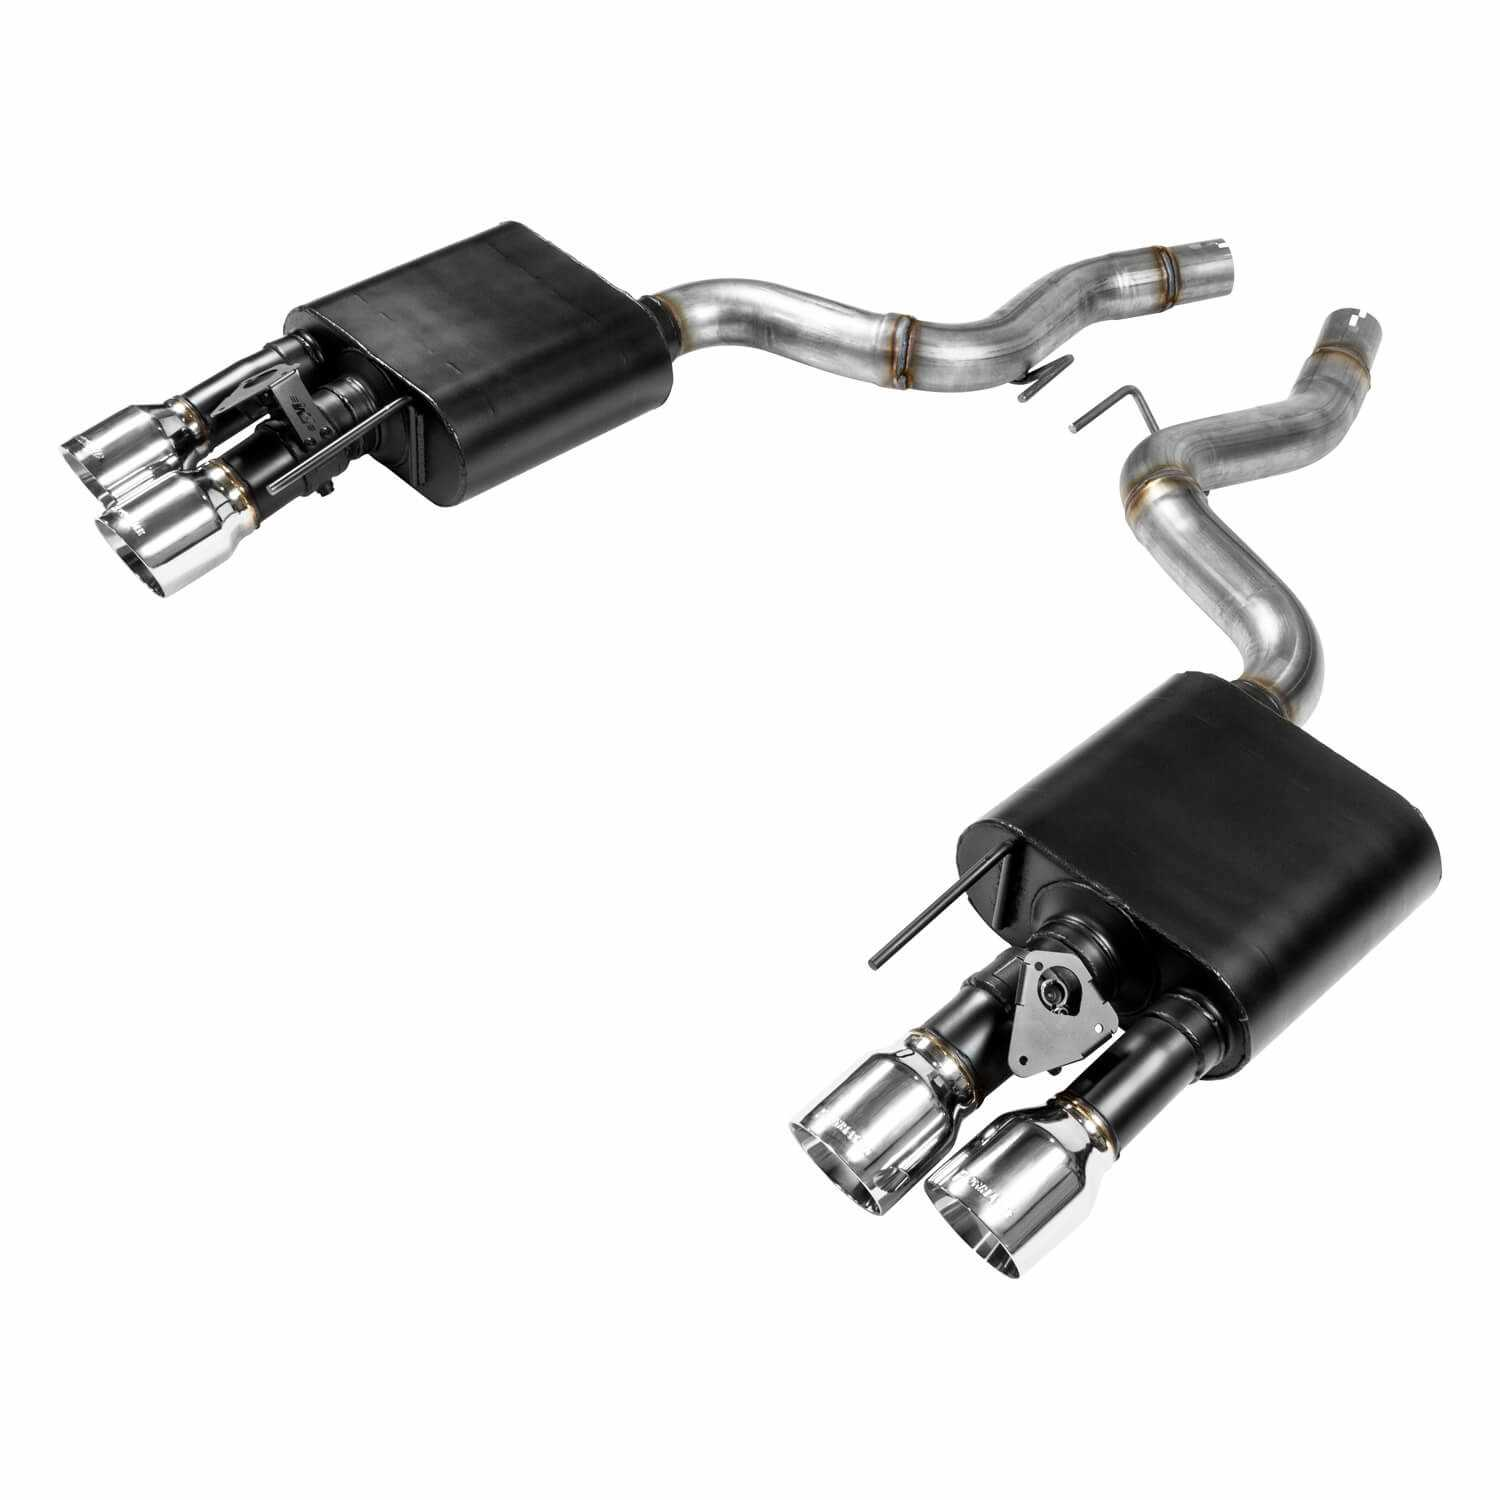 817799 Flowmaster American Thunder Axle Back Exhaust System